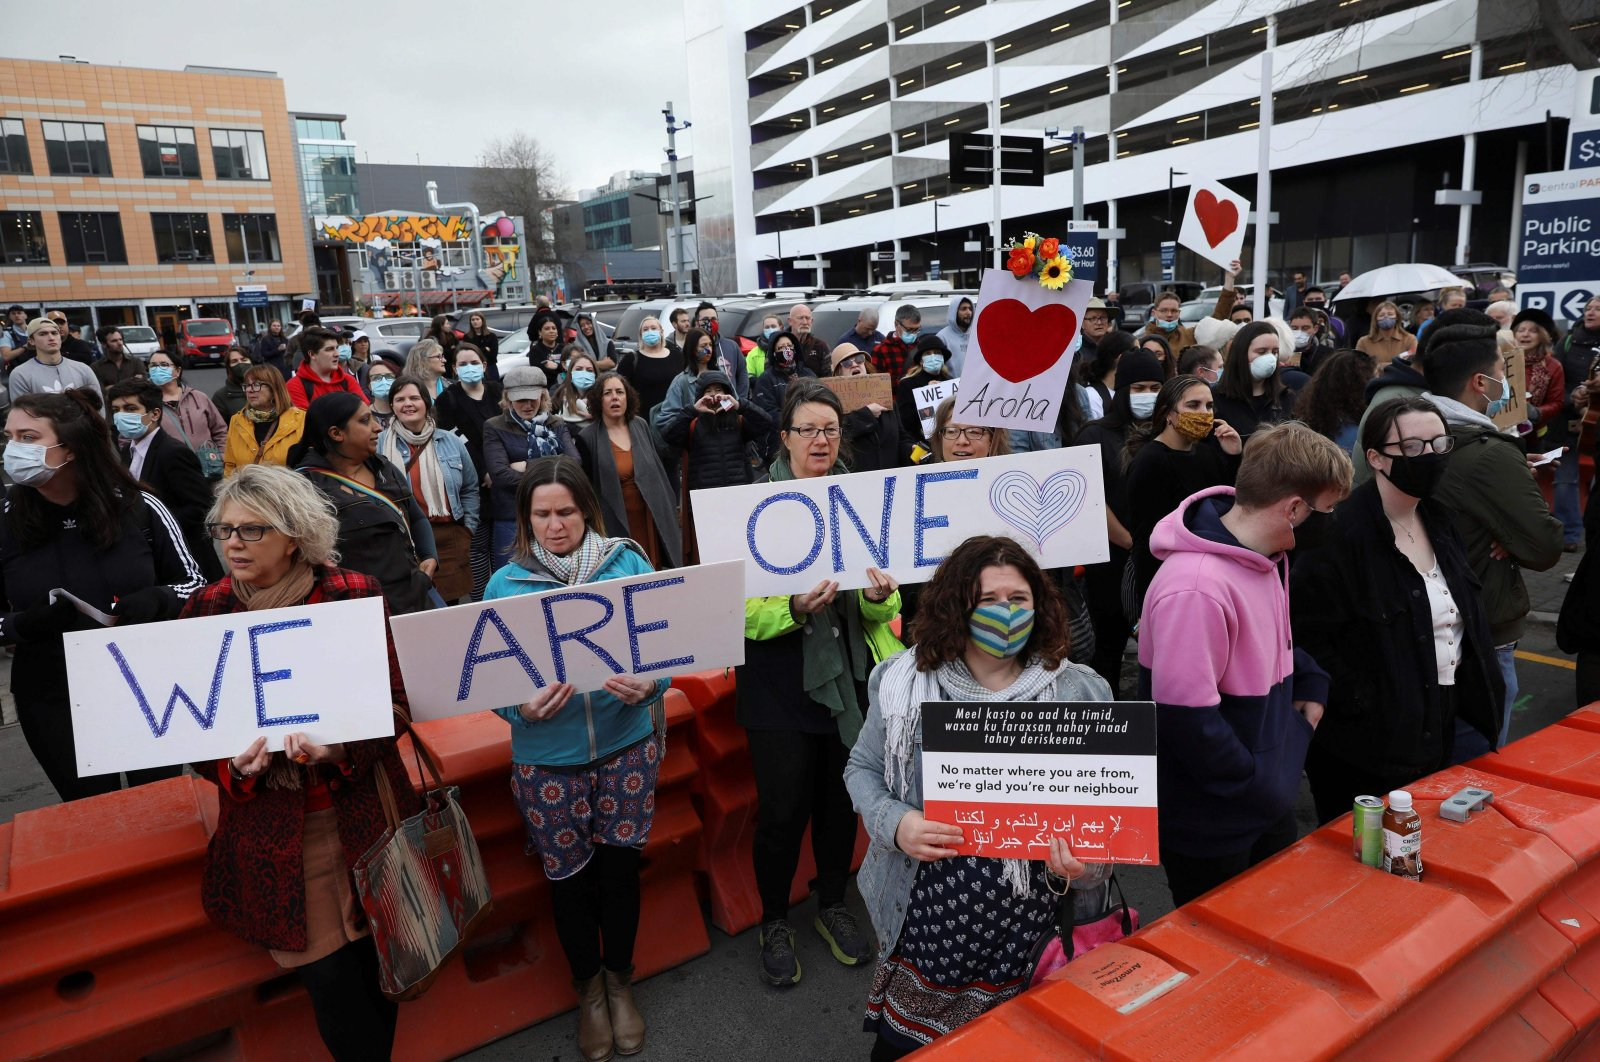 Members of the public gather in frontof the High Court to support relatives of victims killed in the 2019 twin mosque shootings during the last day of the sentencing hearing for Brenton Tarrant, the terrorist who massacred 51 people in the attacks, in Christchurch, New Zealand, Aug. 27, 2020. (AFP Photo)